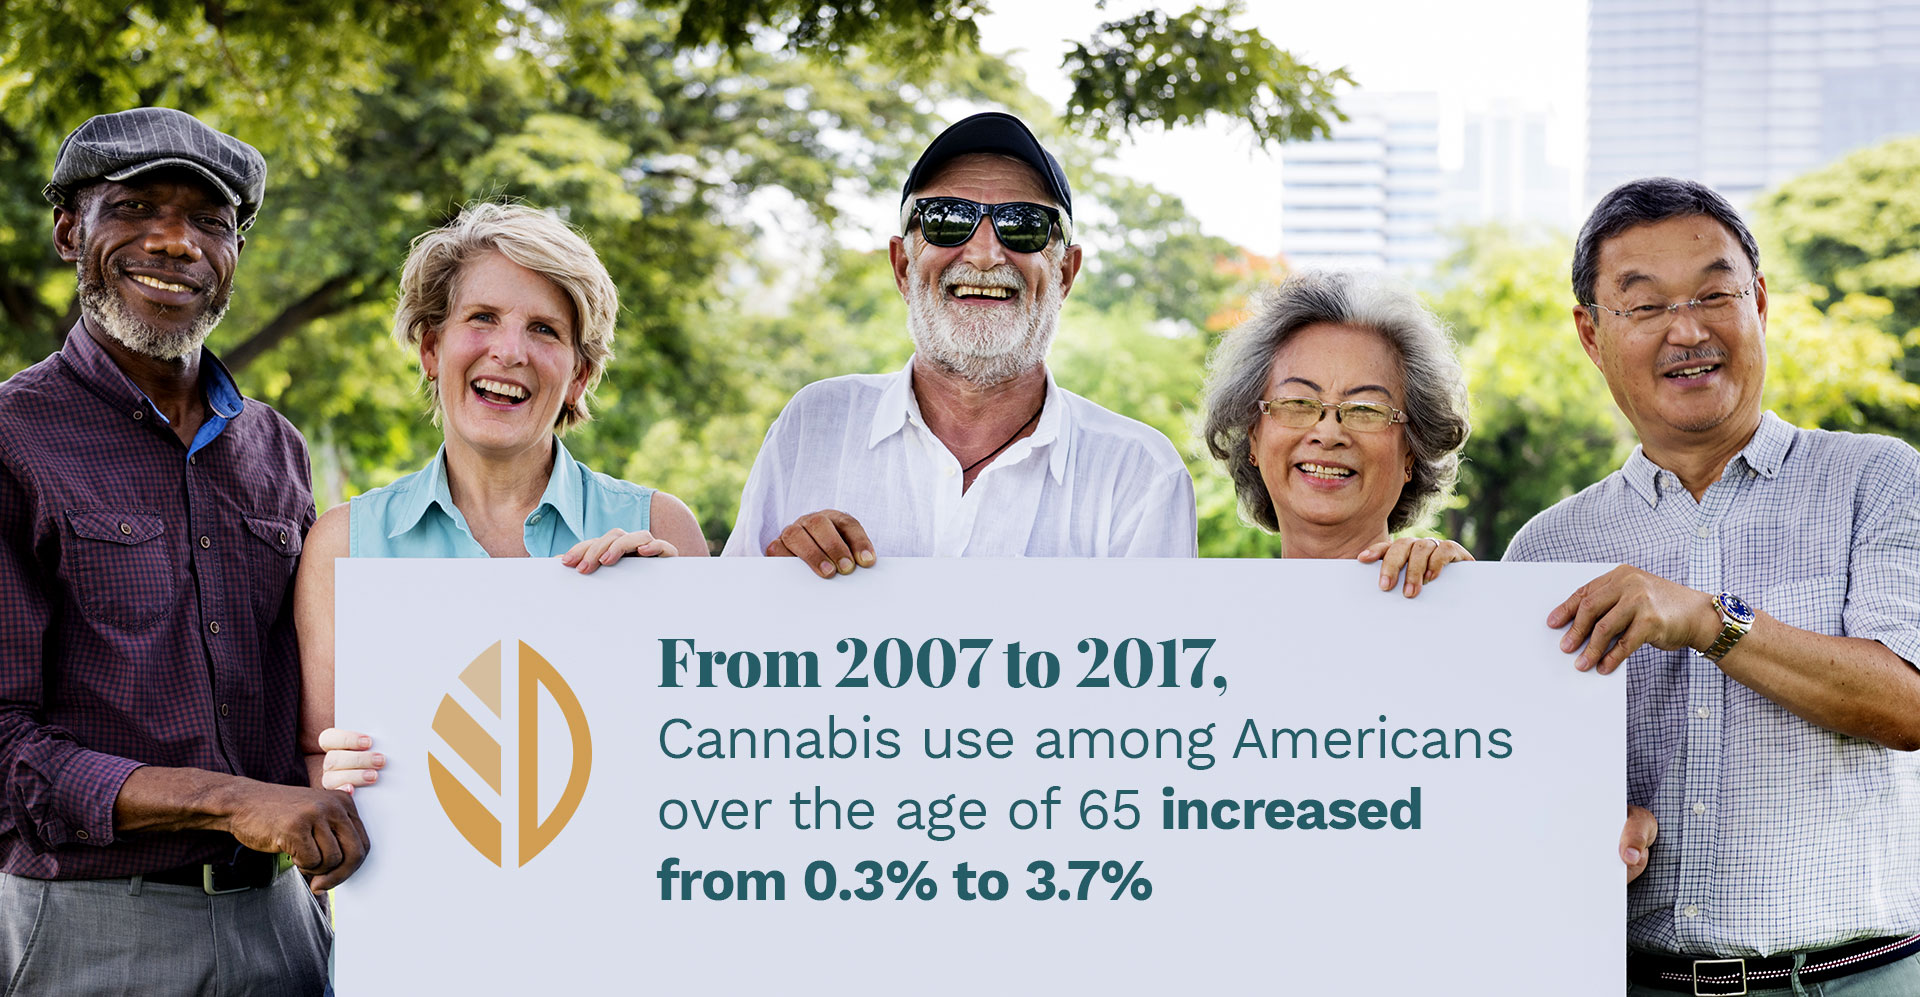 The Changing Face of Cannabis Use